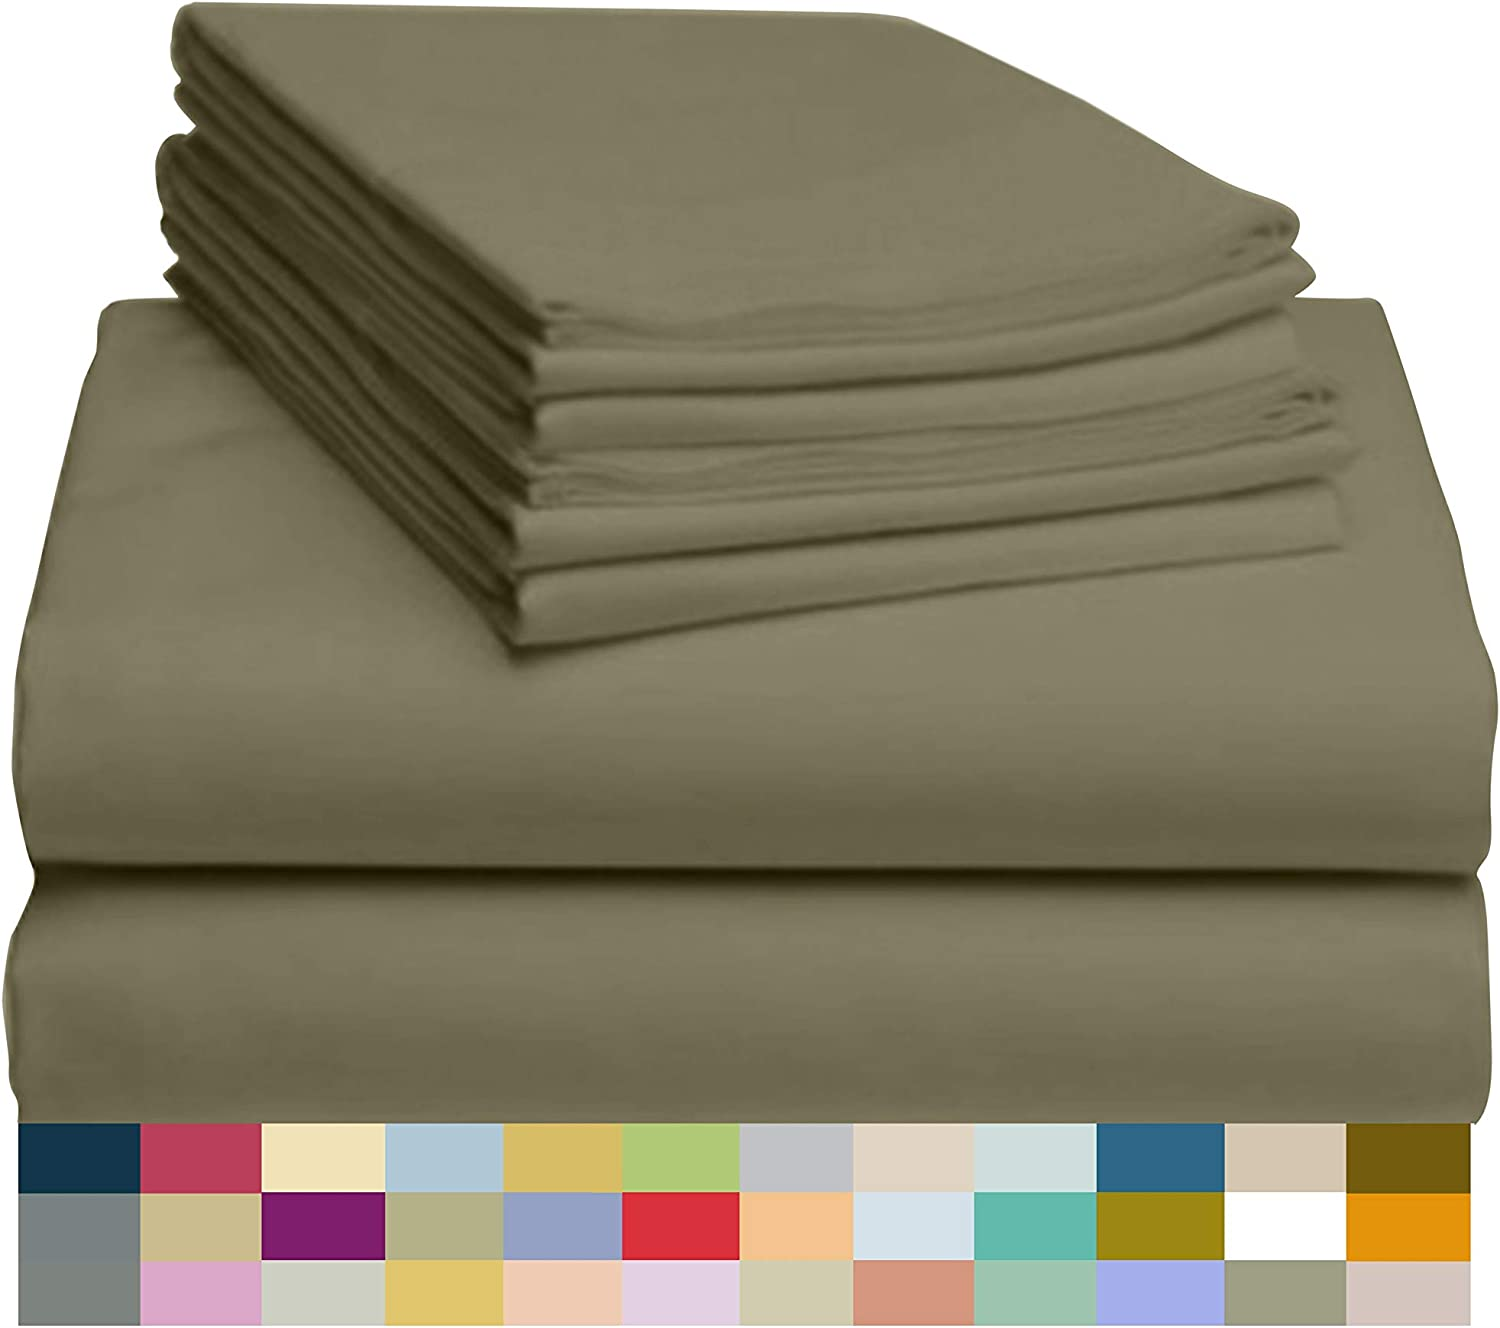 """LuxClub 6 PC Sheet Set Bamboo Sheets Deep Pockets 18"""" Eco Friendly Wrinkle Free Sheets Hypoallergenic Anti-Bacteria Machine Washable Hotel Bedding Silky Soft - Olive Queen"""